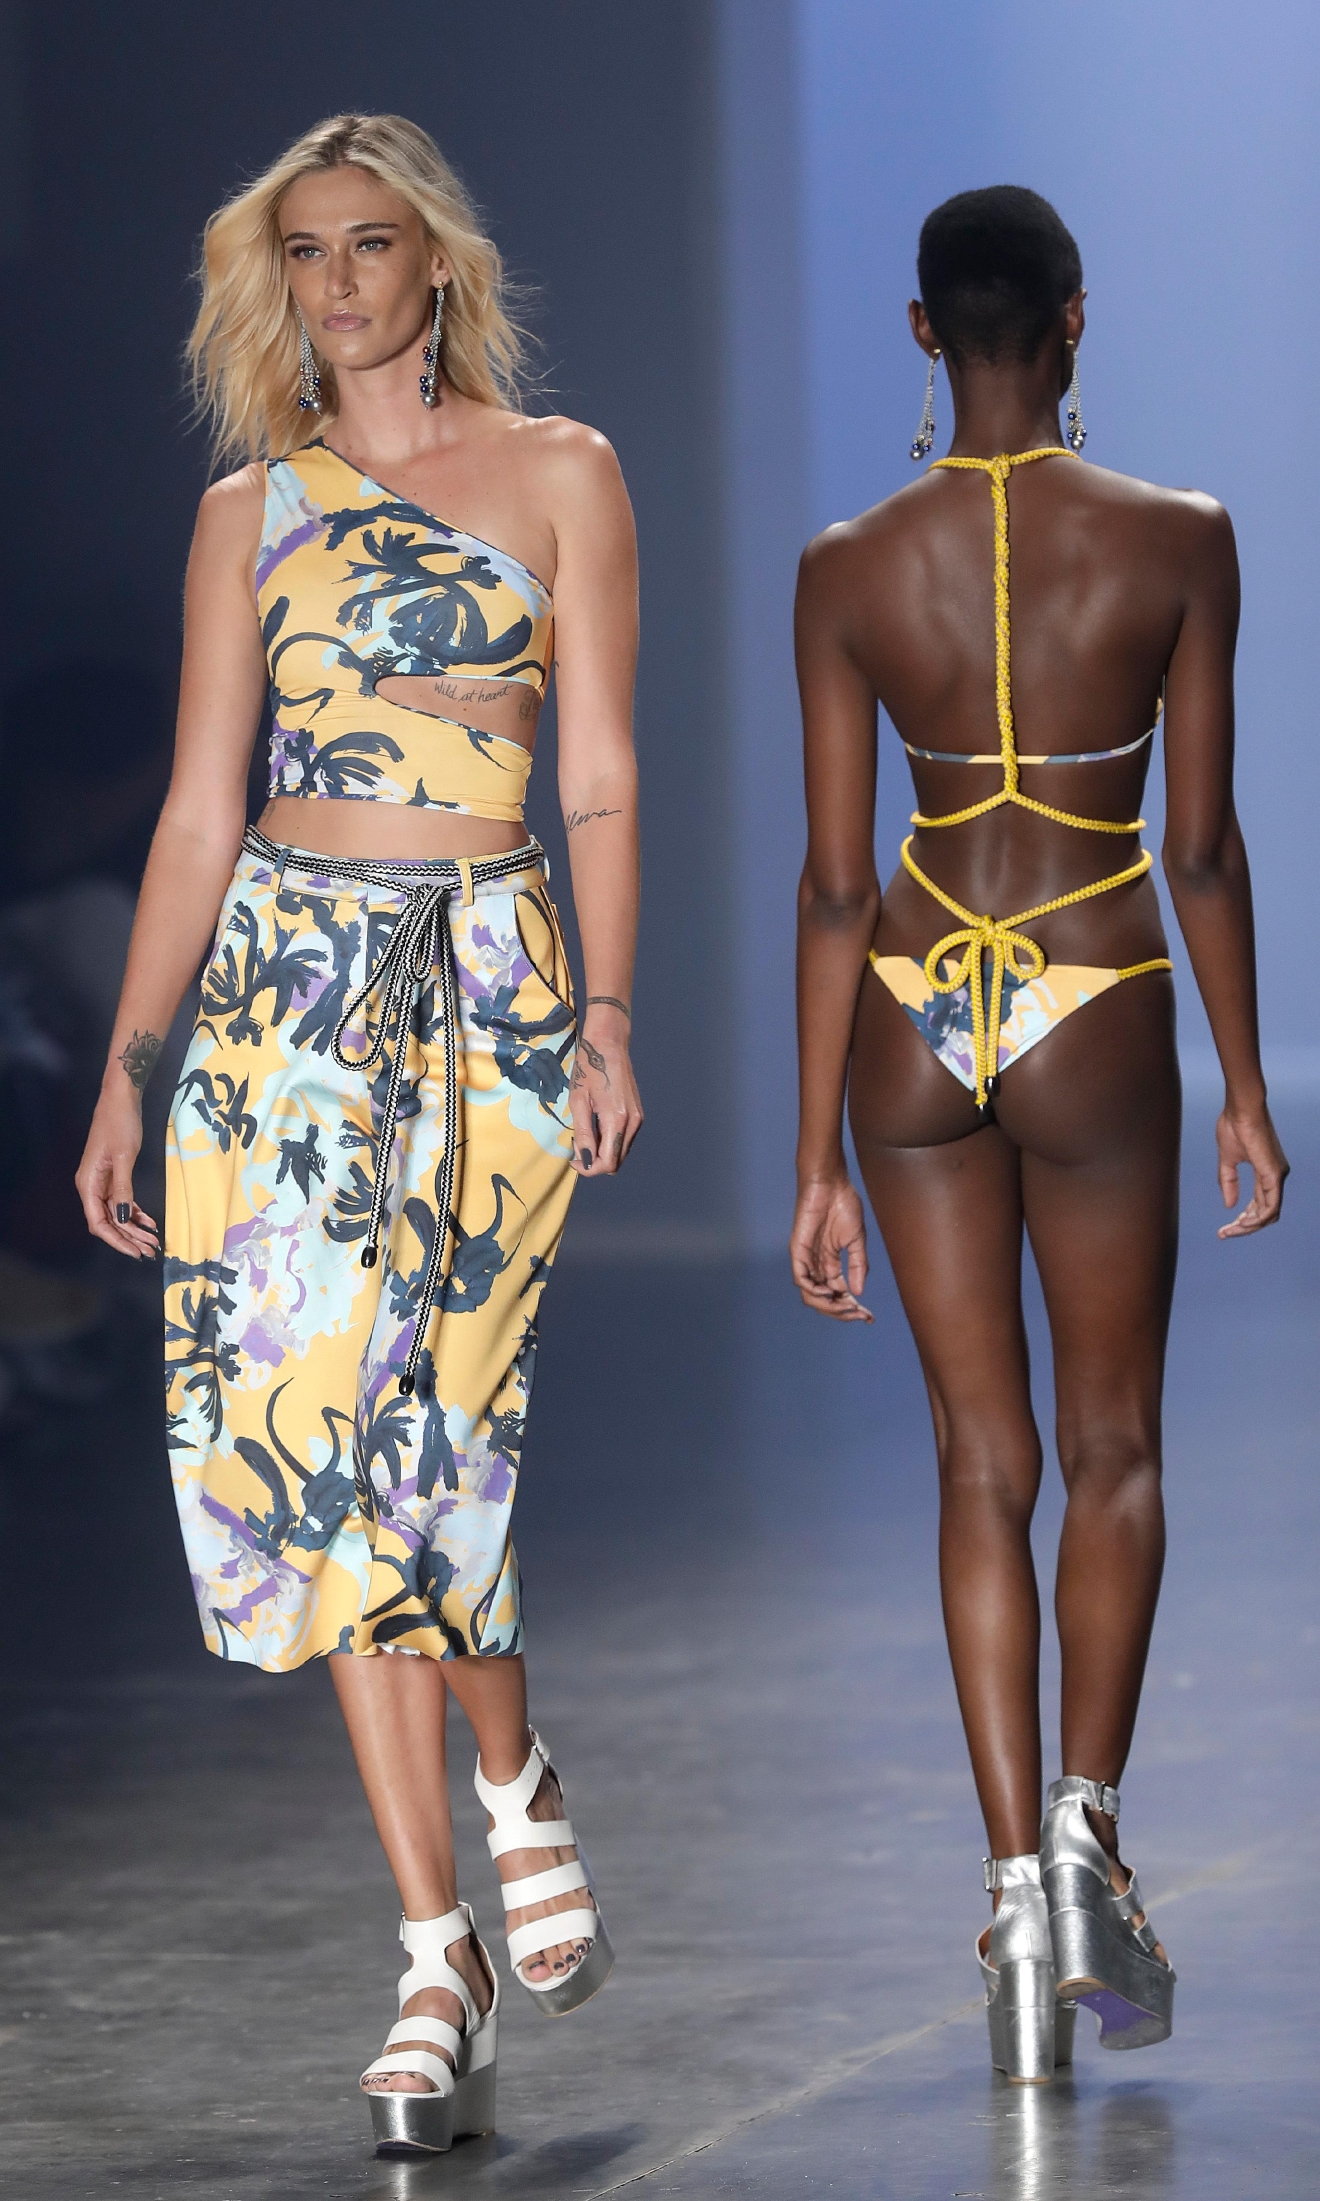 Models wear creations from the PH Praia collection during the Sao Paulo Fashion Week in Sao Paulo, Brazil, Friday, March 17, 2017. (AP Photo/Andre Penner)